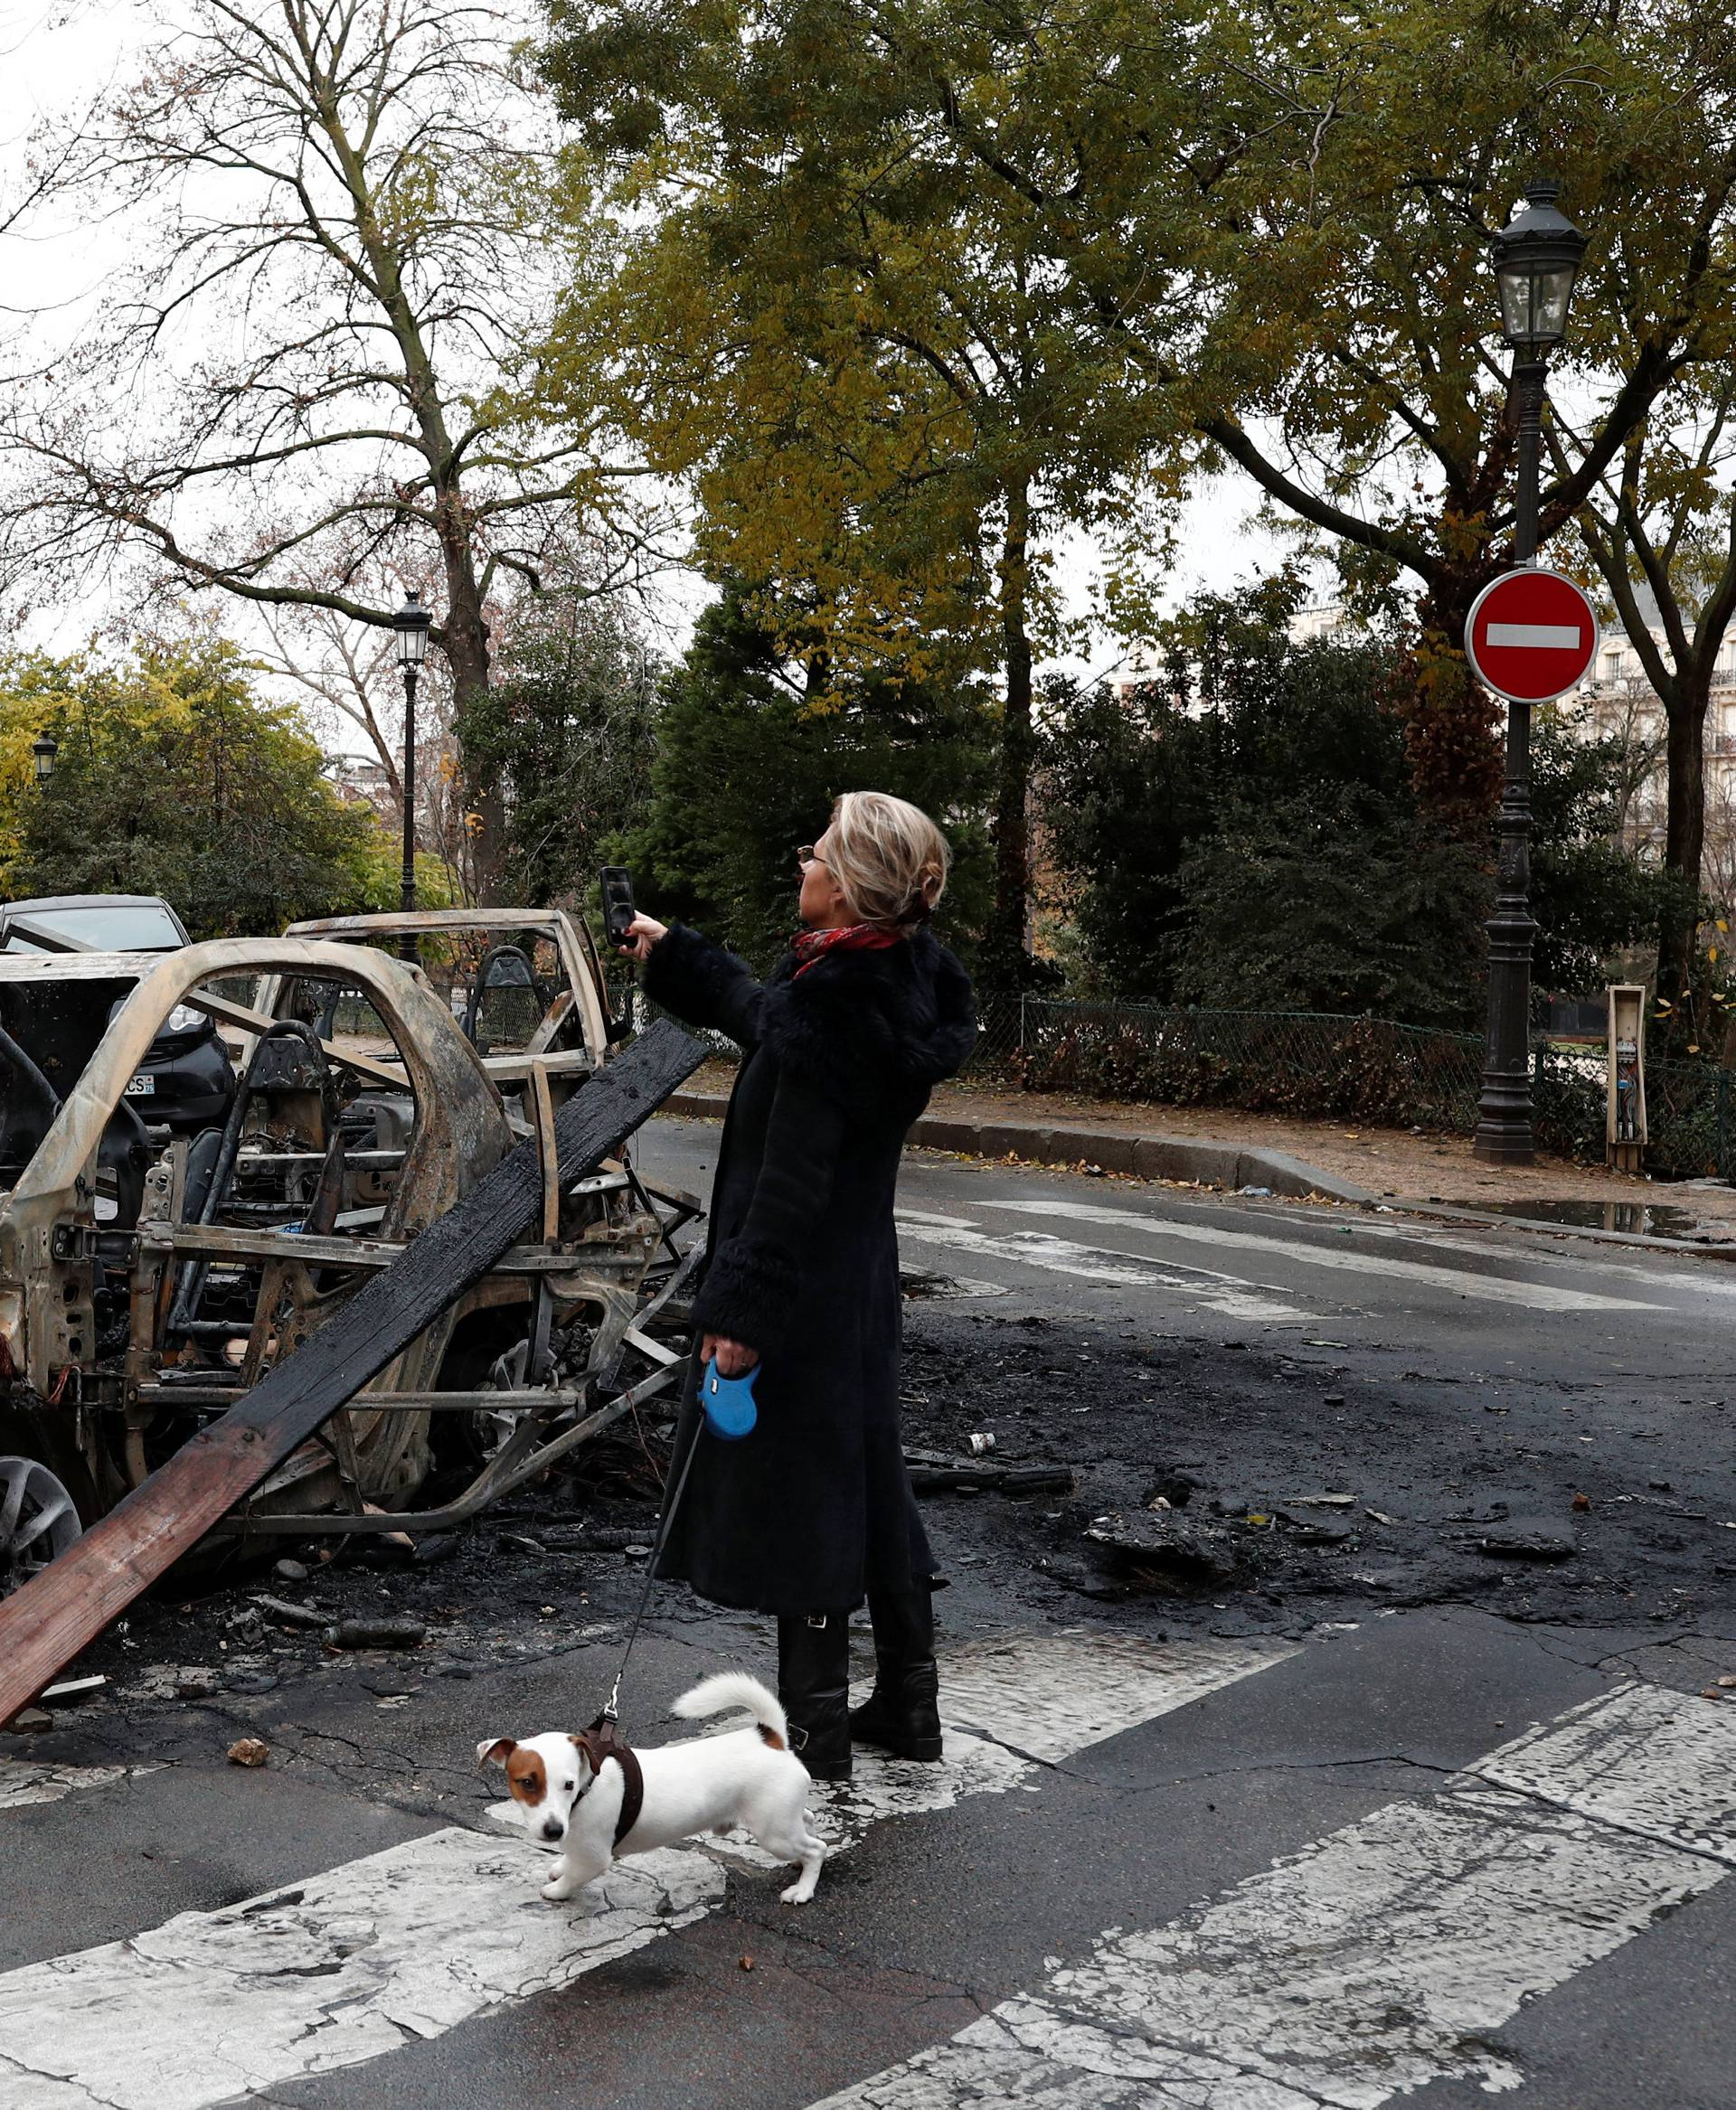 Vandalized cars are seen on a street the morning after clashes with protesters wearing yellow vests, a symbol of a French drivers' protest against higher diesel taxes, in Paris